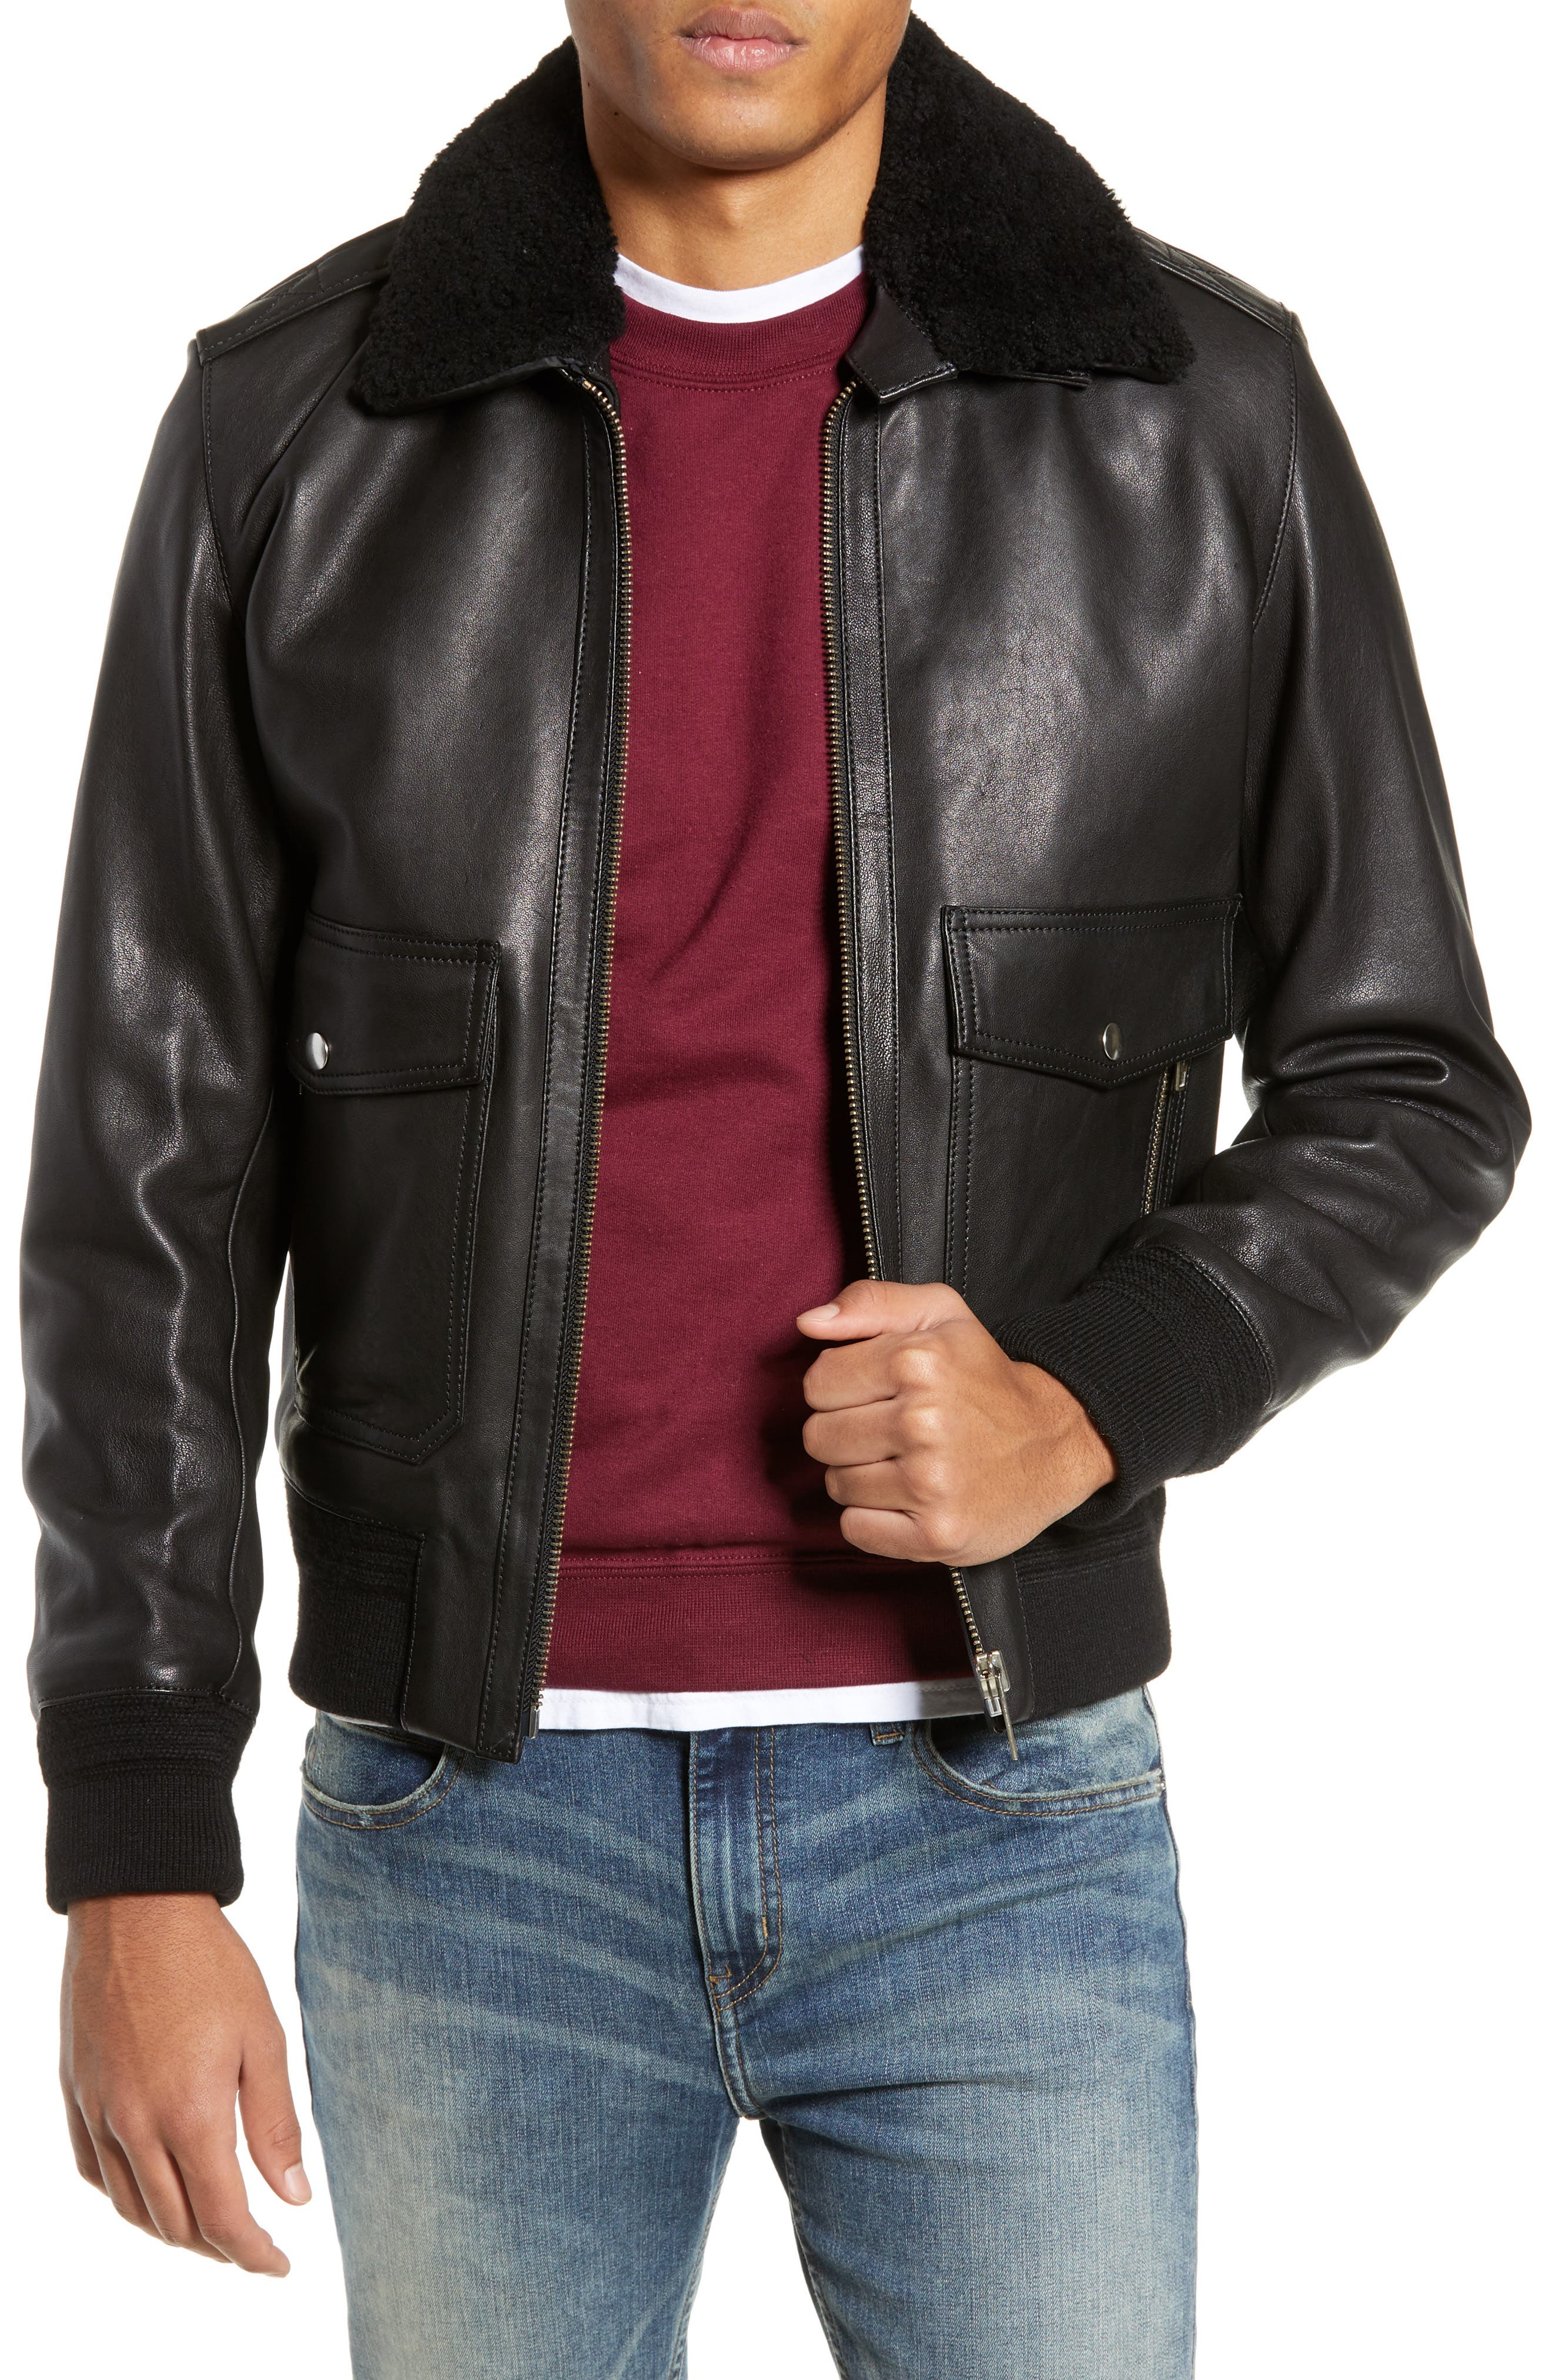 THE KOOPLES, Teddy Leather Jacket with Removable Genuine Lamb Shearling Trim, Main thumbnail 1, color, 001